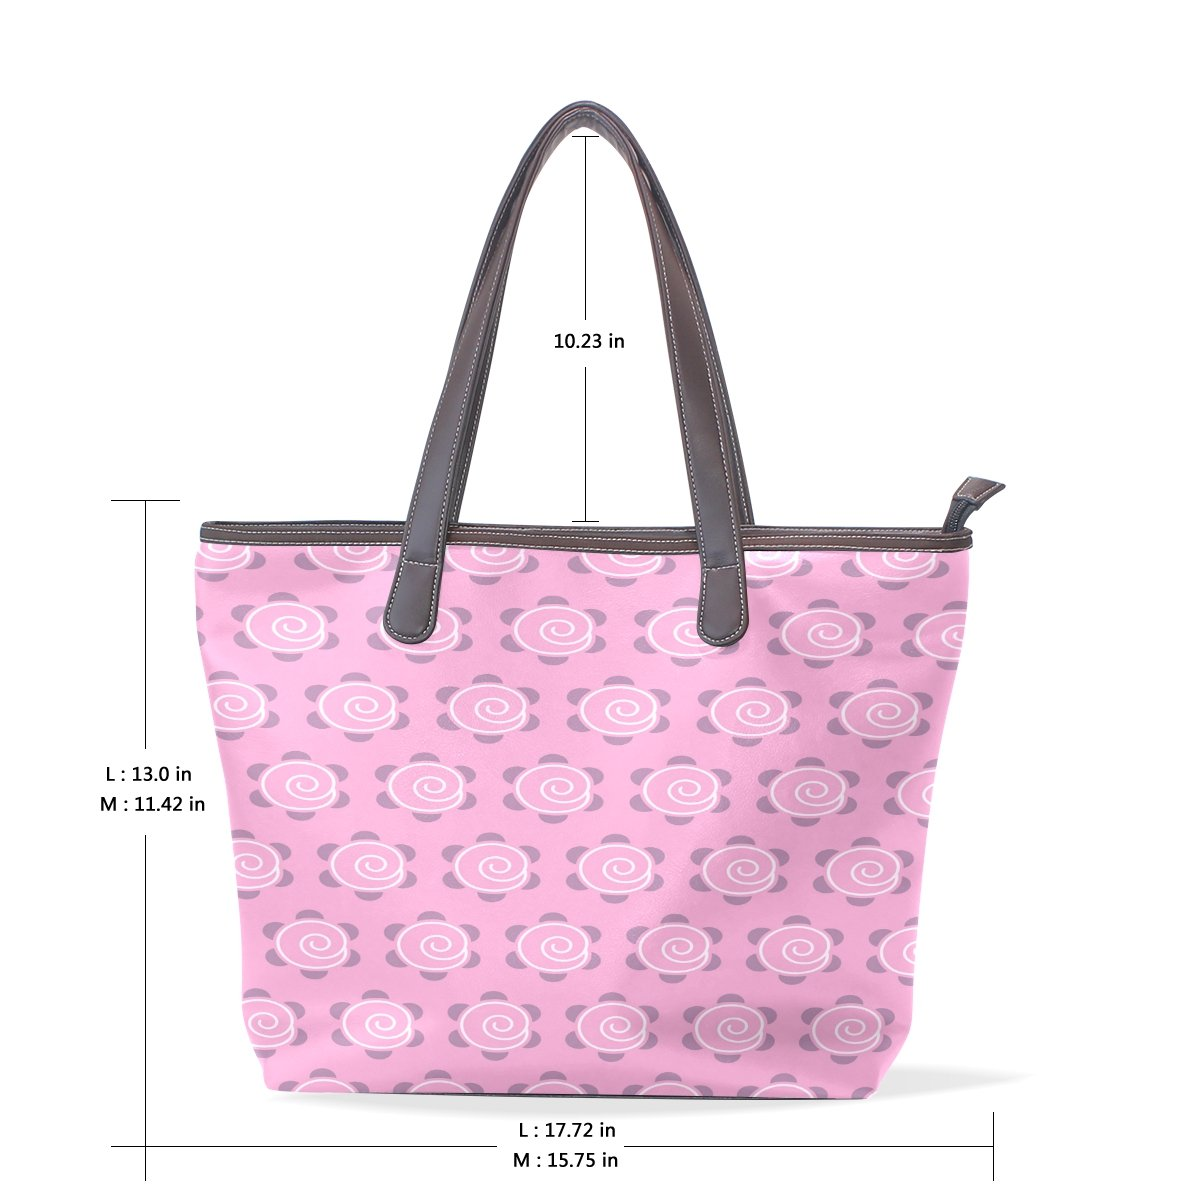 Ye Store Cute Pink Plum Blossom Cloud Lady PU Leather Handbag Tote Bag Shoulder Bag Shopping Bag